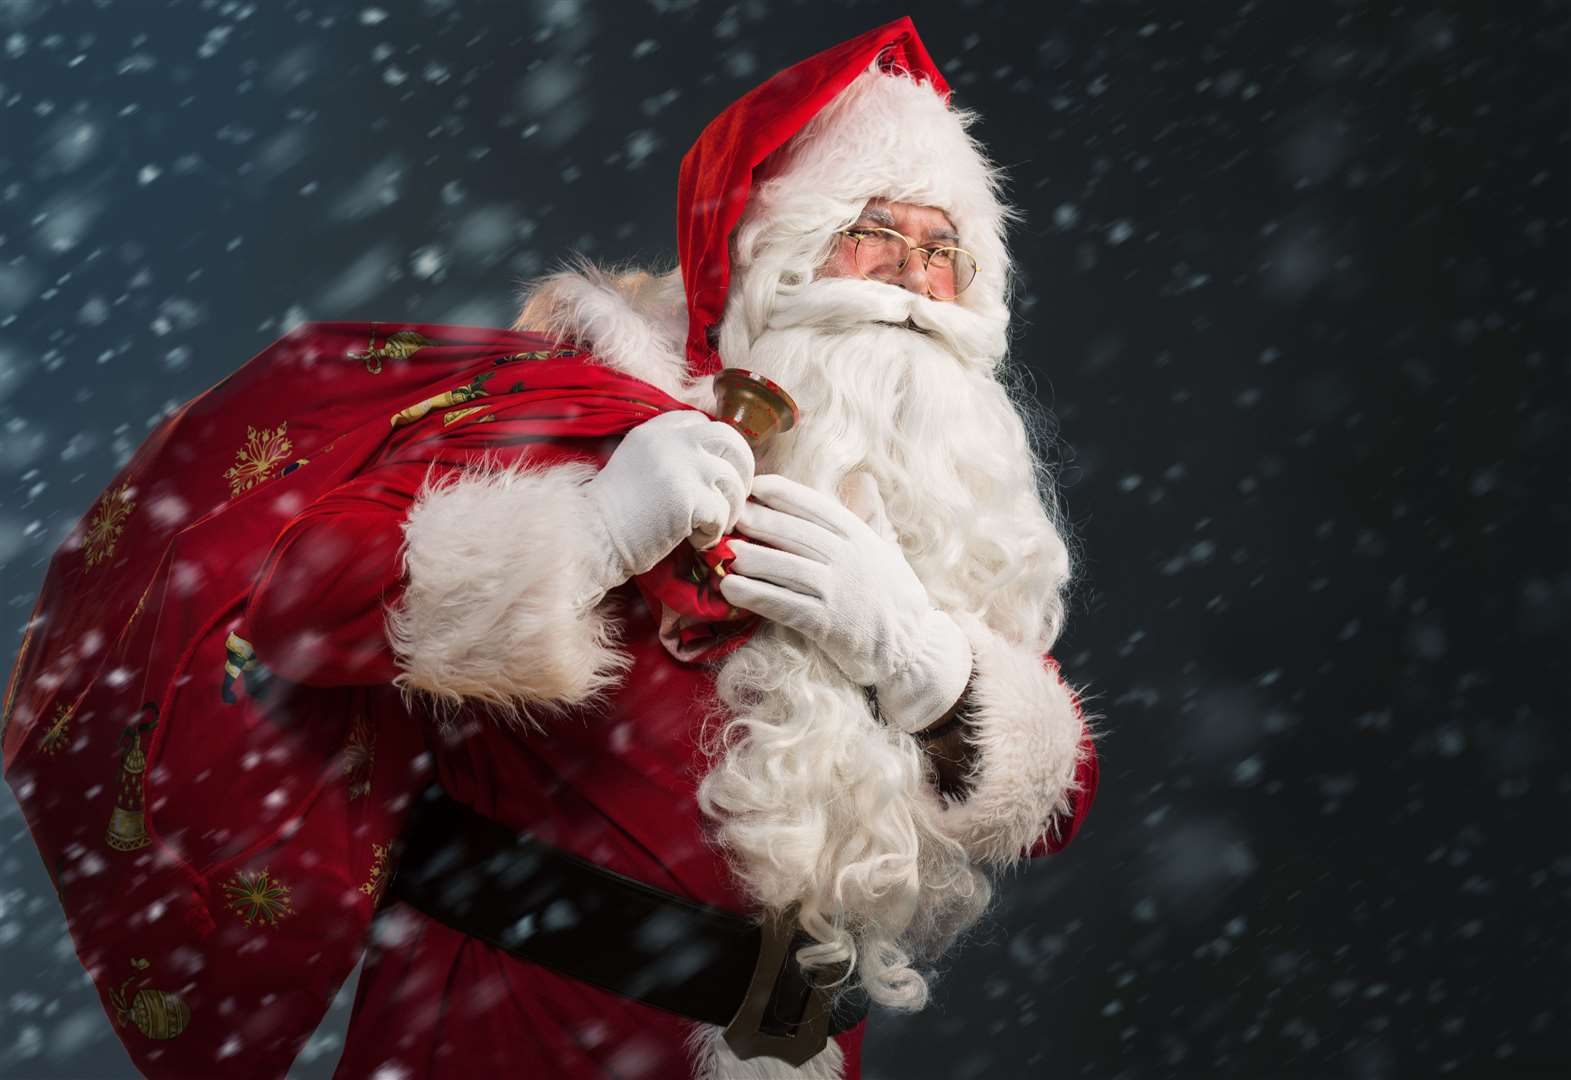 You may know him... Santa's coming to these grottos